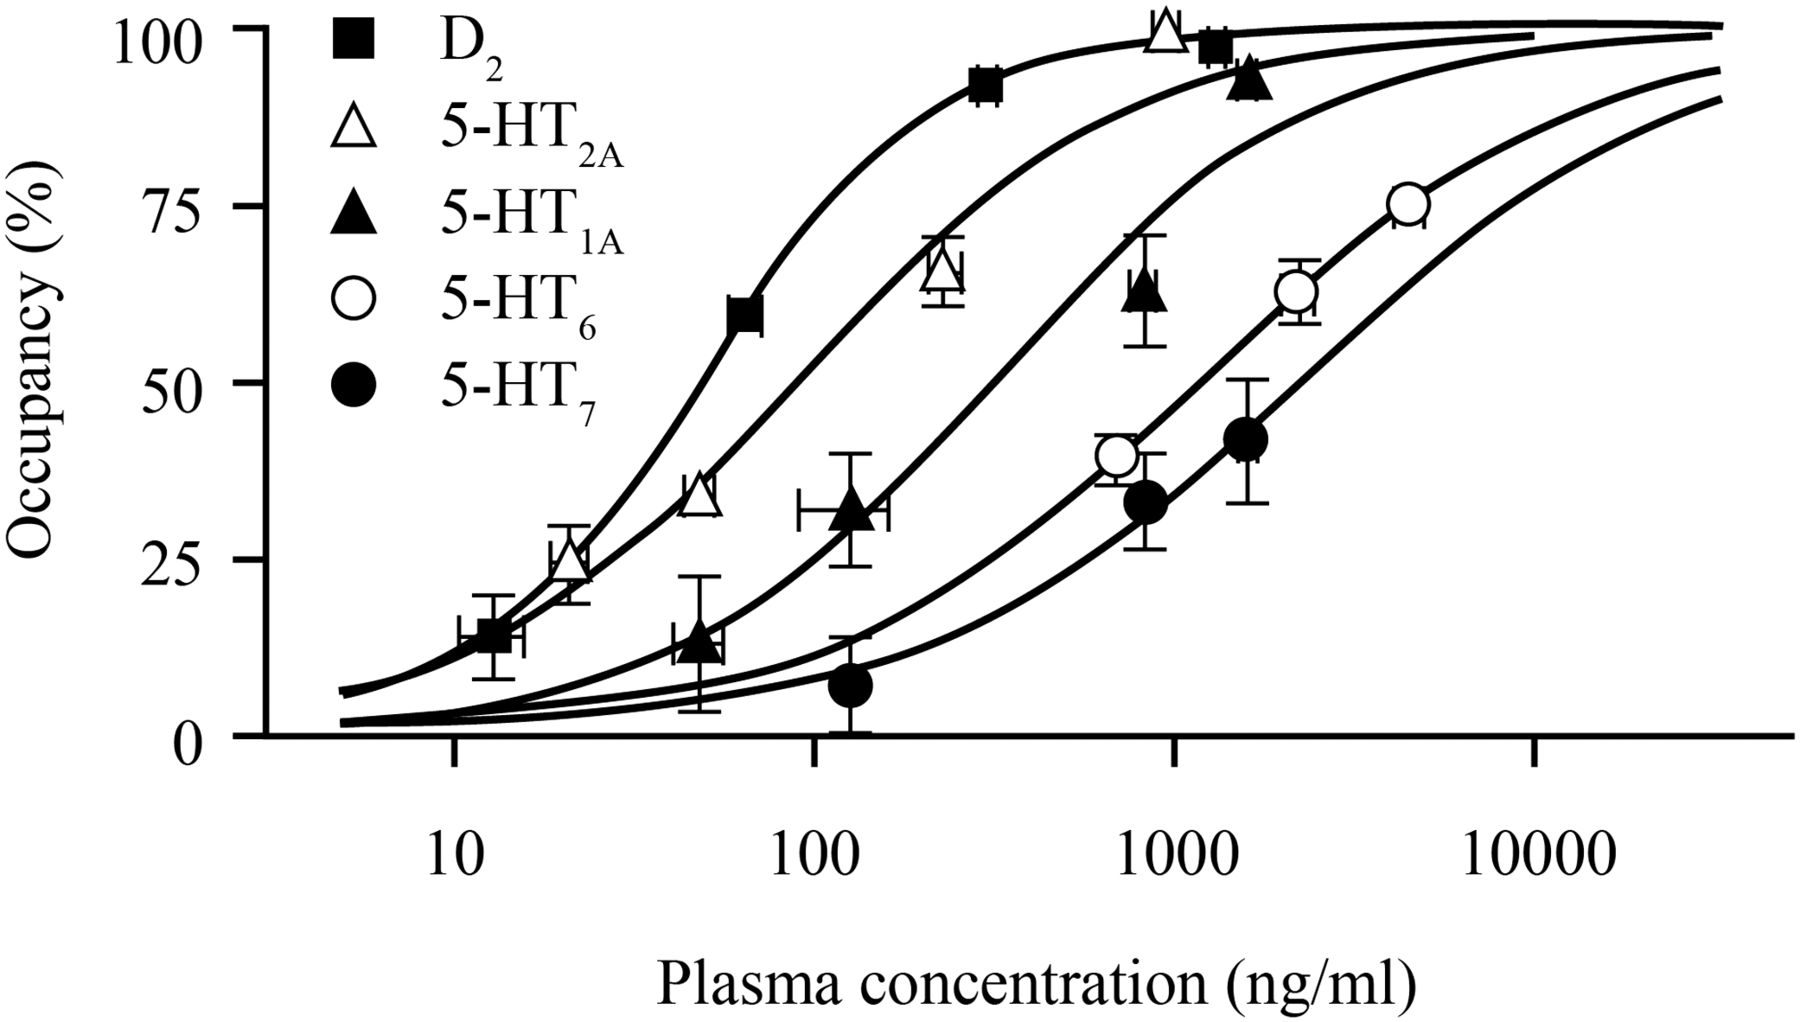 Brexpiprazole i in vitro and in vivo characterization of a novel brexpiprazole binds to d2 5 ht2a and 5 ht6 receptors in rat cns in vivo pooptronica